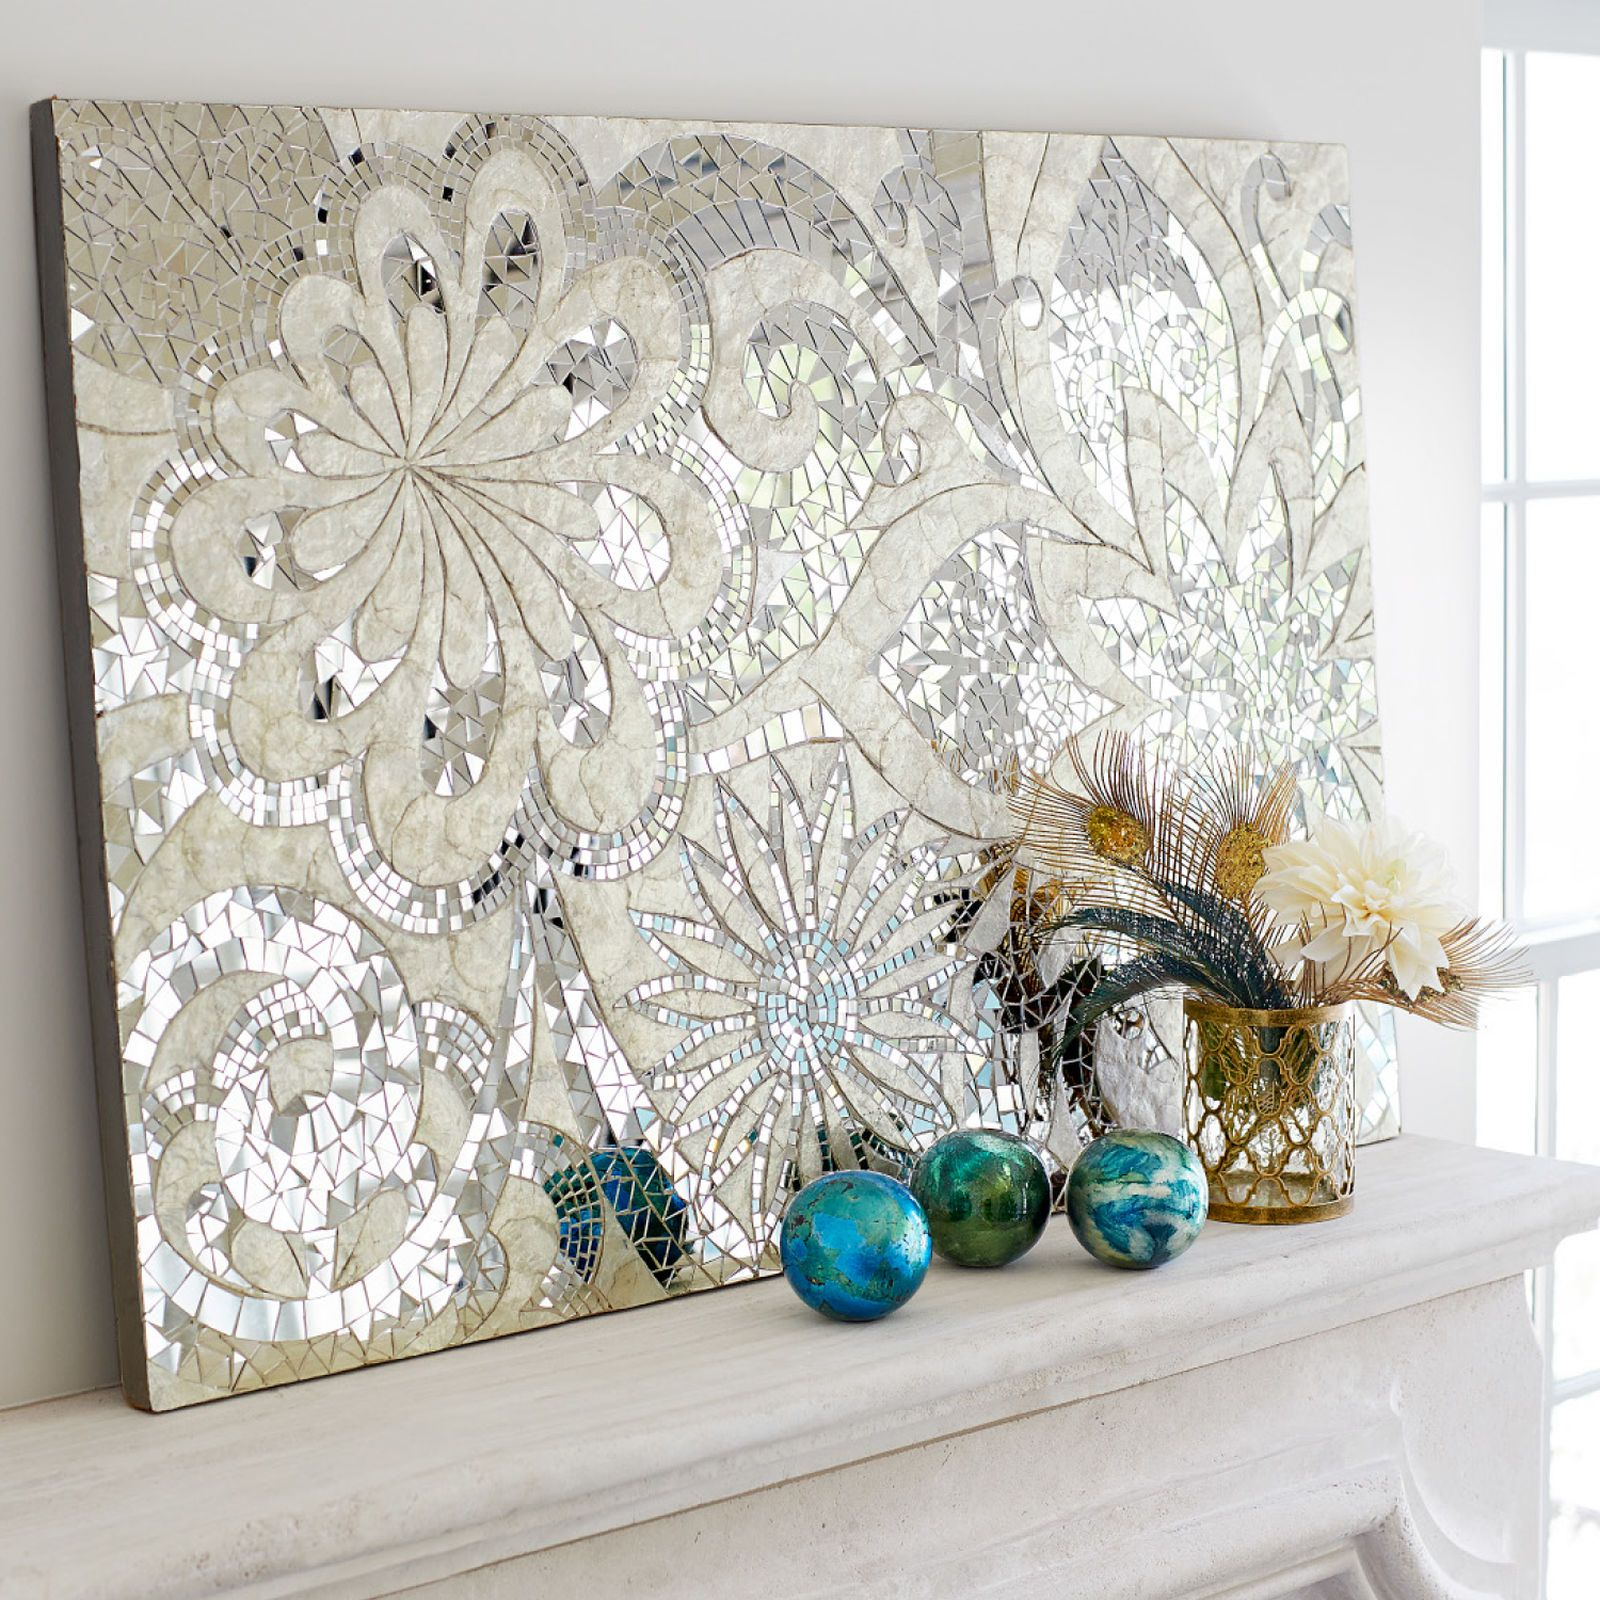 Floral Capiz Mosaic Wall Panel Pier 1 Imports Mosaic Wall Art Mosaic Wall Pier One Wall Art